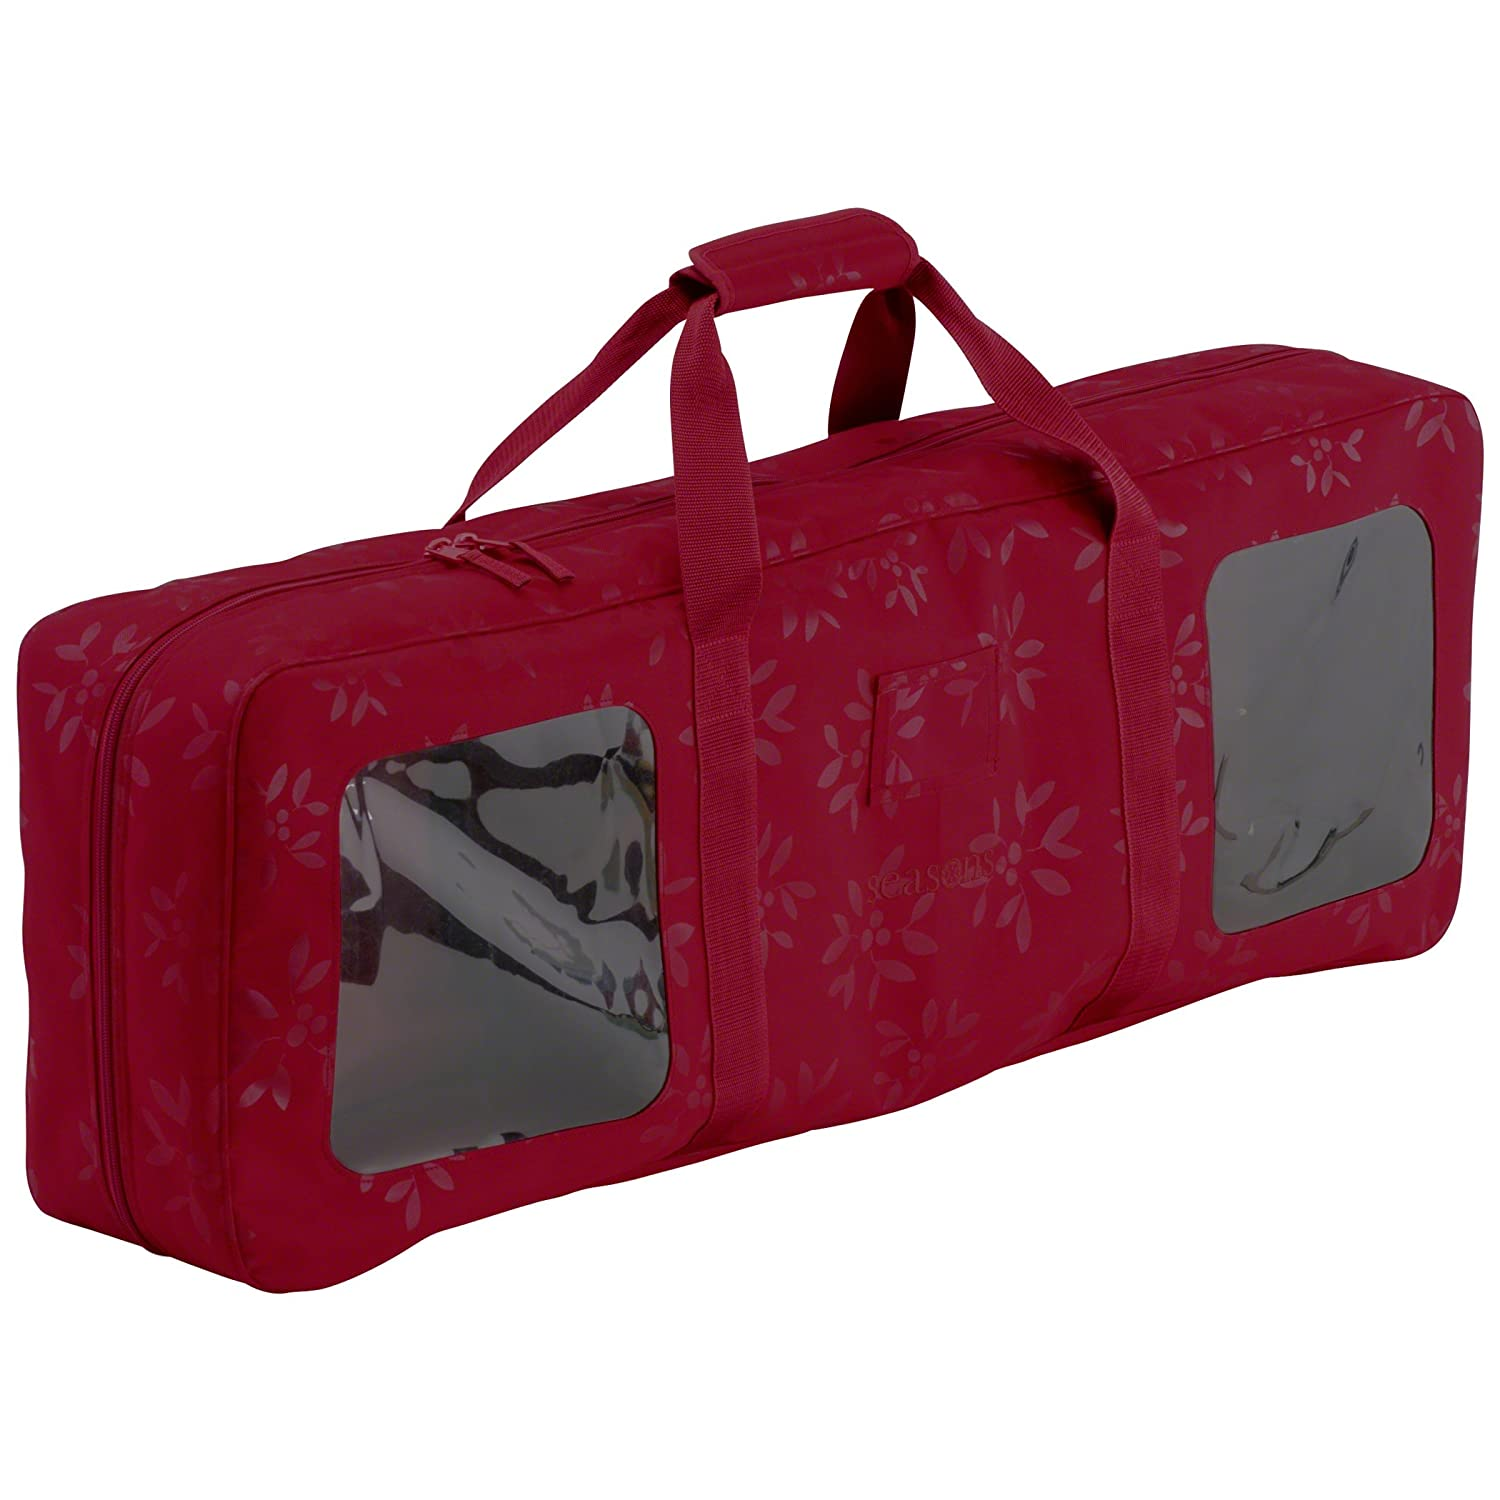 Classic Accessories Seasons Holiday Gift Wrapping Supplies Organizer & Storage Duffel 57-006-014301-00